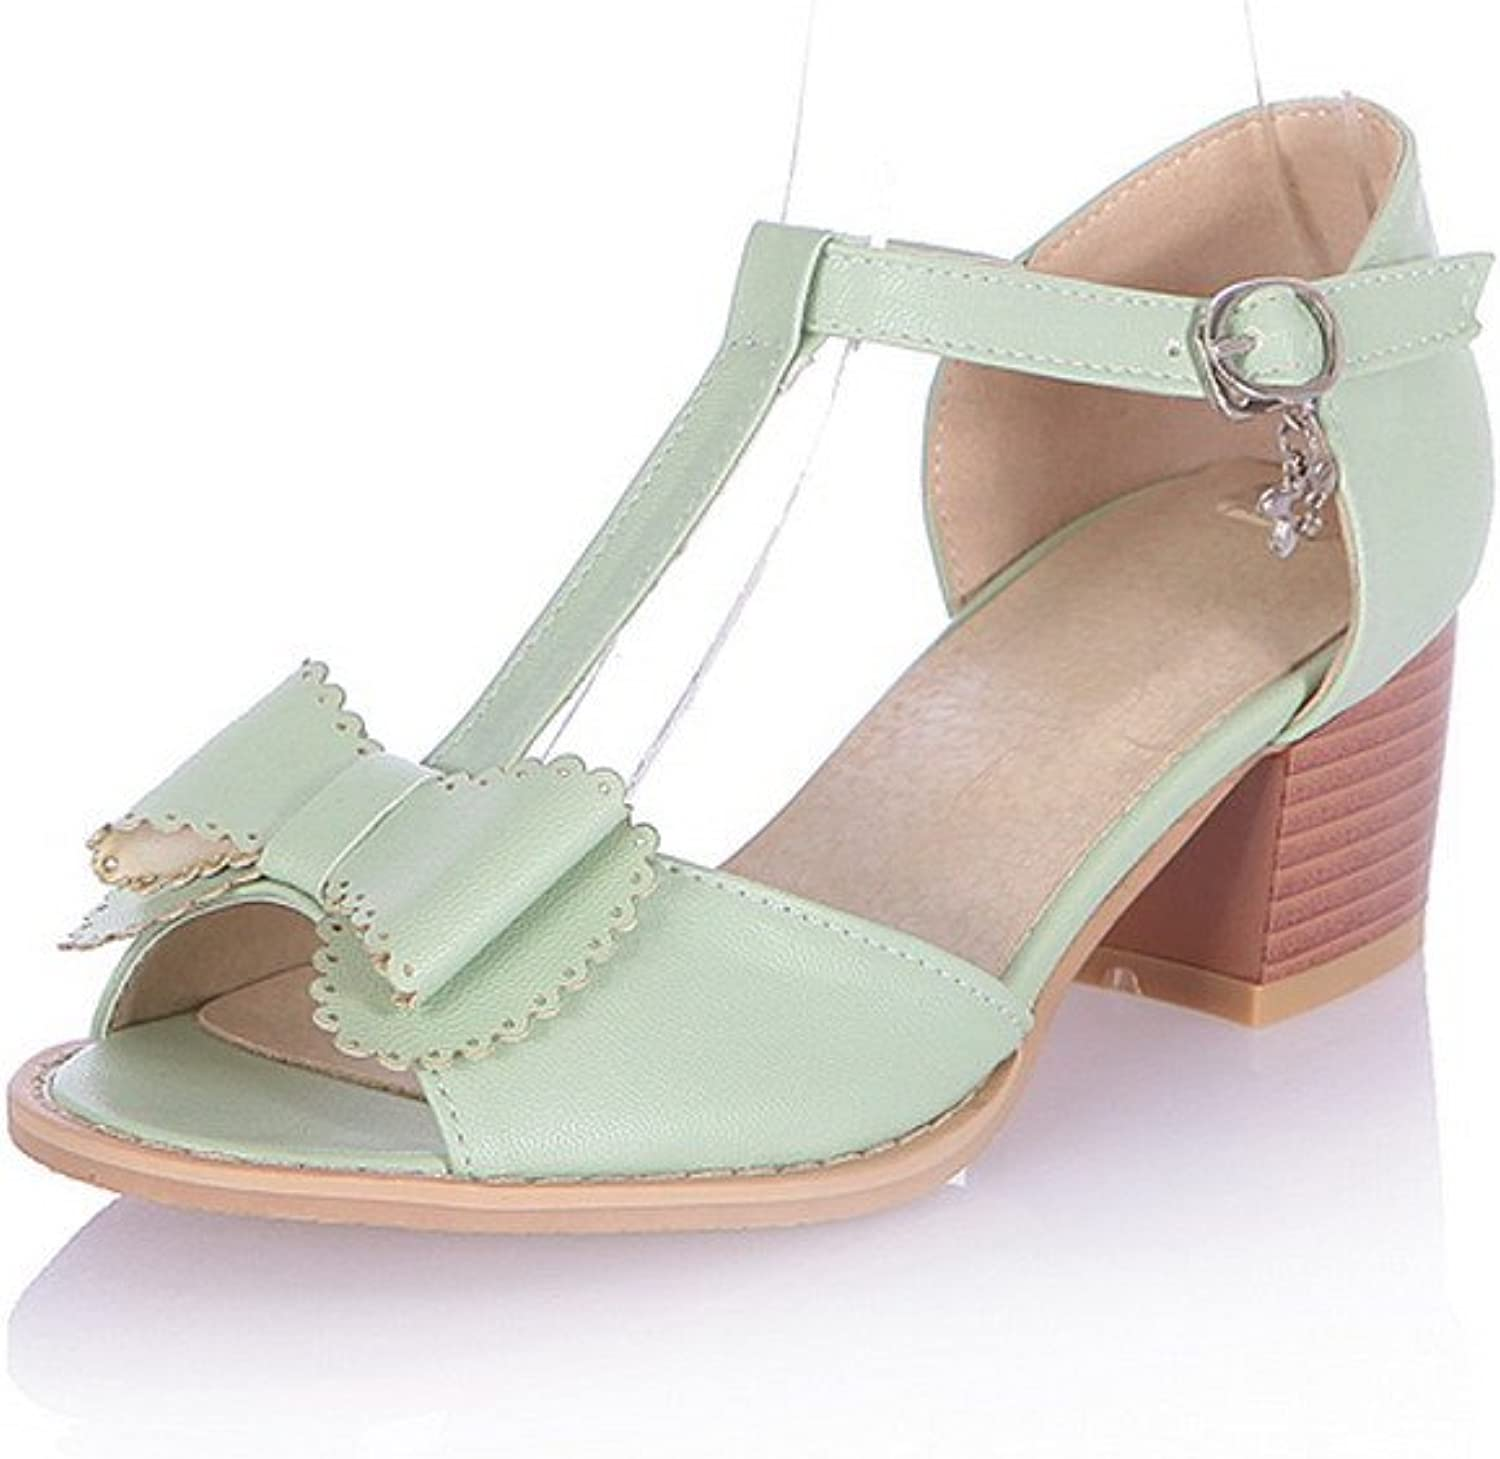 WeenFashion Womens Open Peep Toe Kitten Heel PU Soft Material Solid Sandals with Buckle and Bowknot, Green, 10 B(M) US